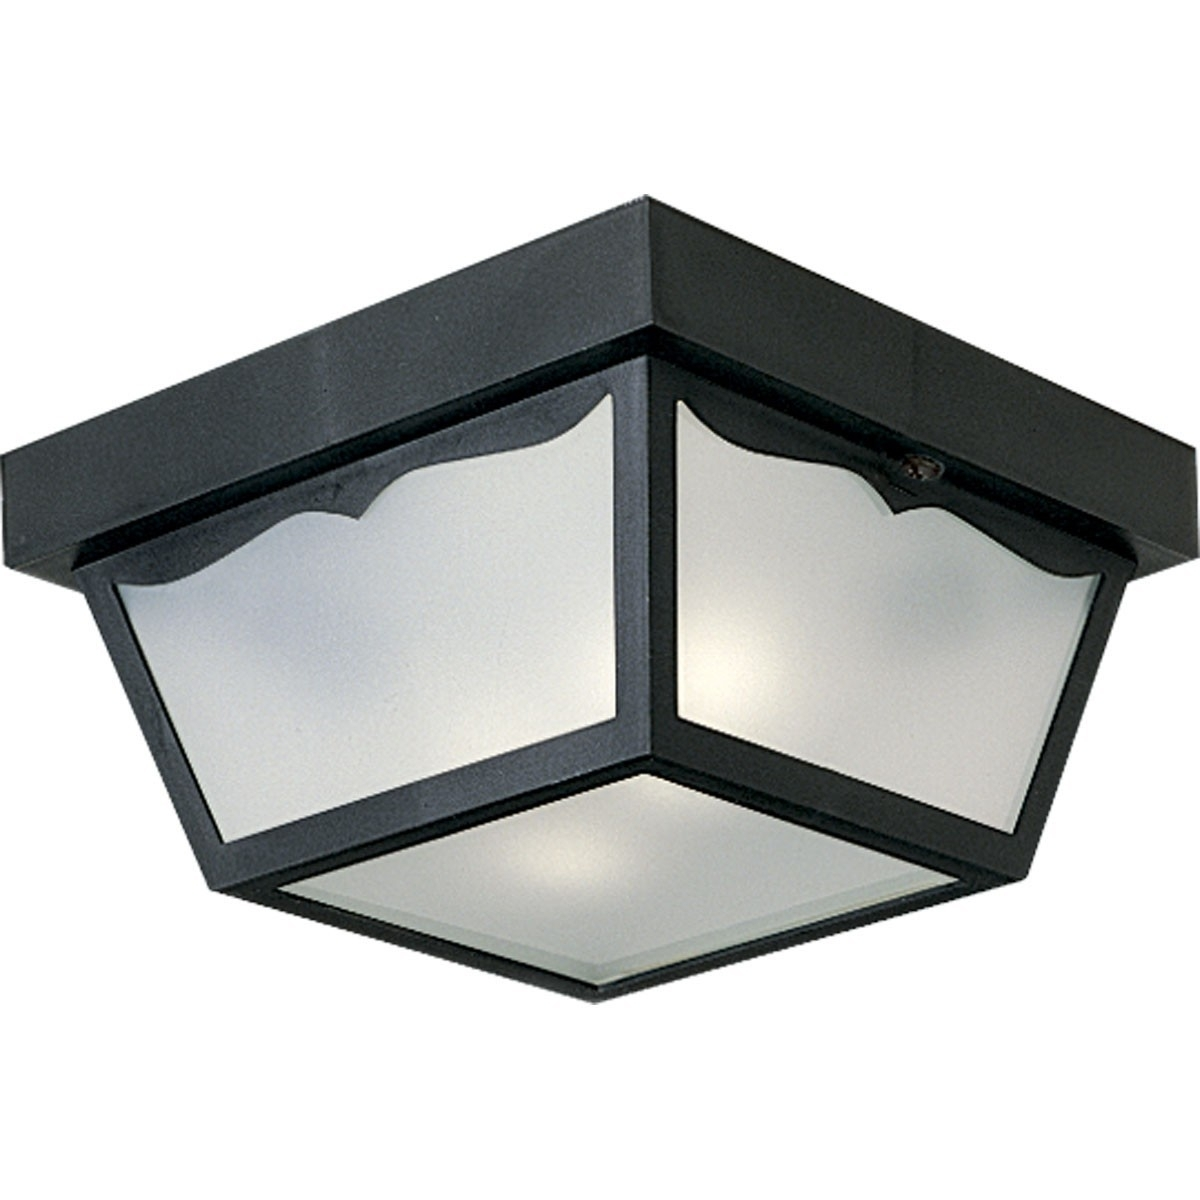 60W Outdoor Flush Mount Non Metallic Ceiling Light – Progress In Outdoor Ceiling Can Lights (#1 of 15)